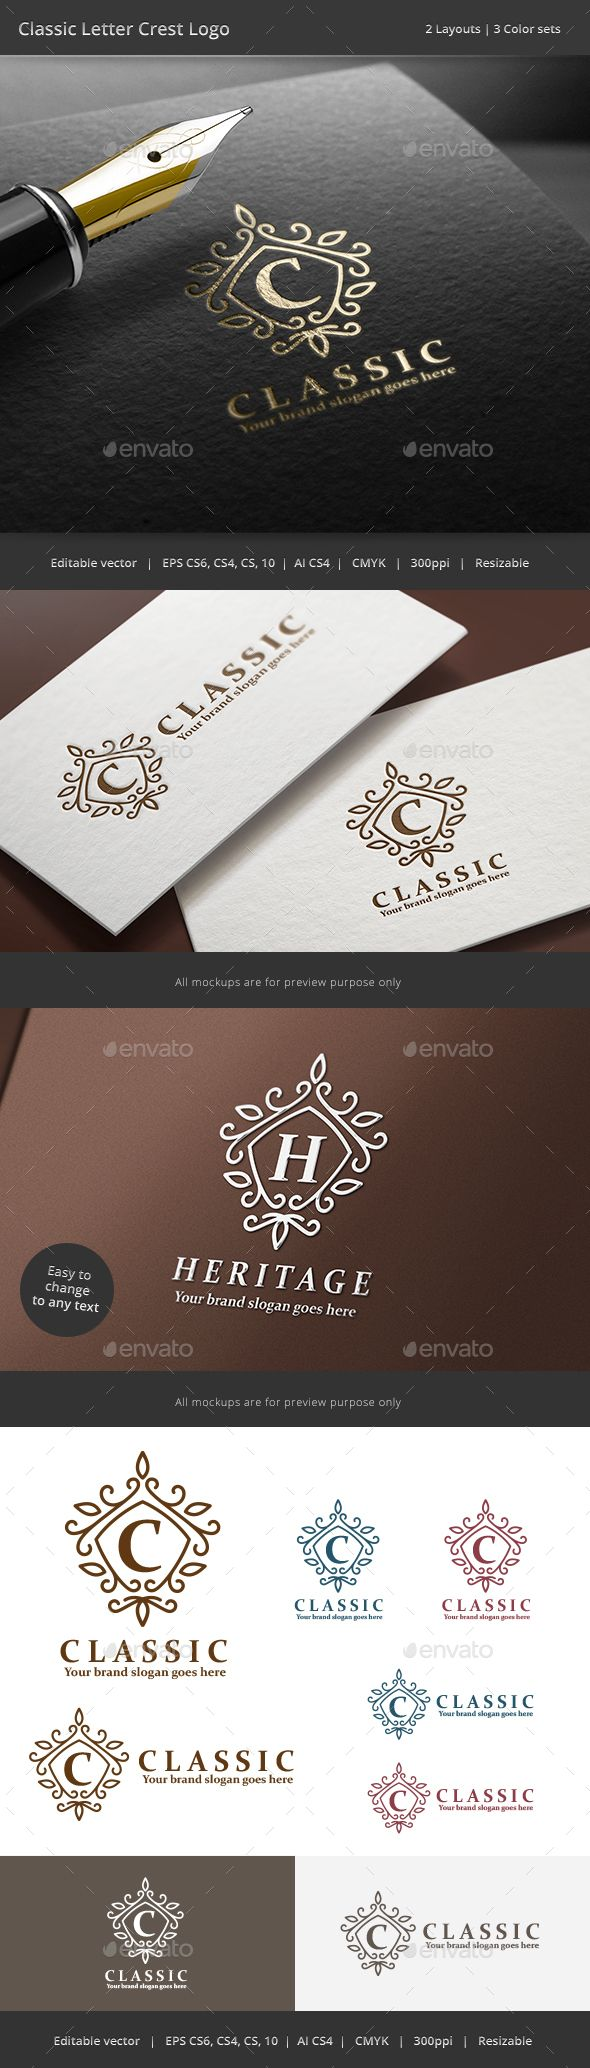 Classic Letter Crest Logo Template Vector EPS, AI #logotype Download: http://graphicriver.net/item/classic-letter-crest-logo/14207420?ref=ksioks